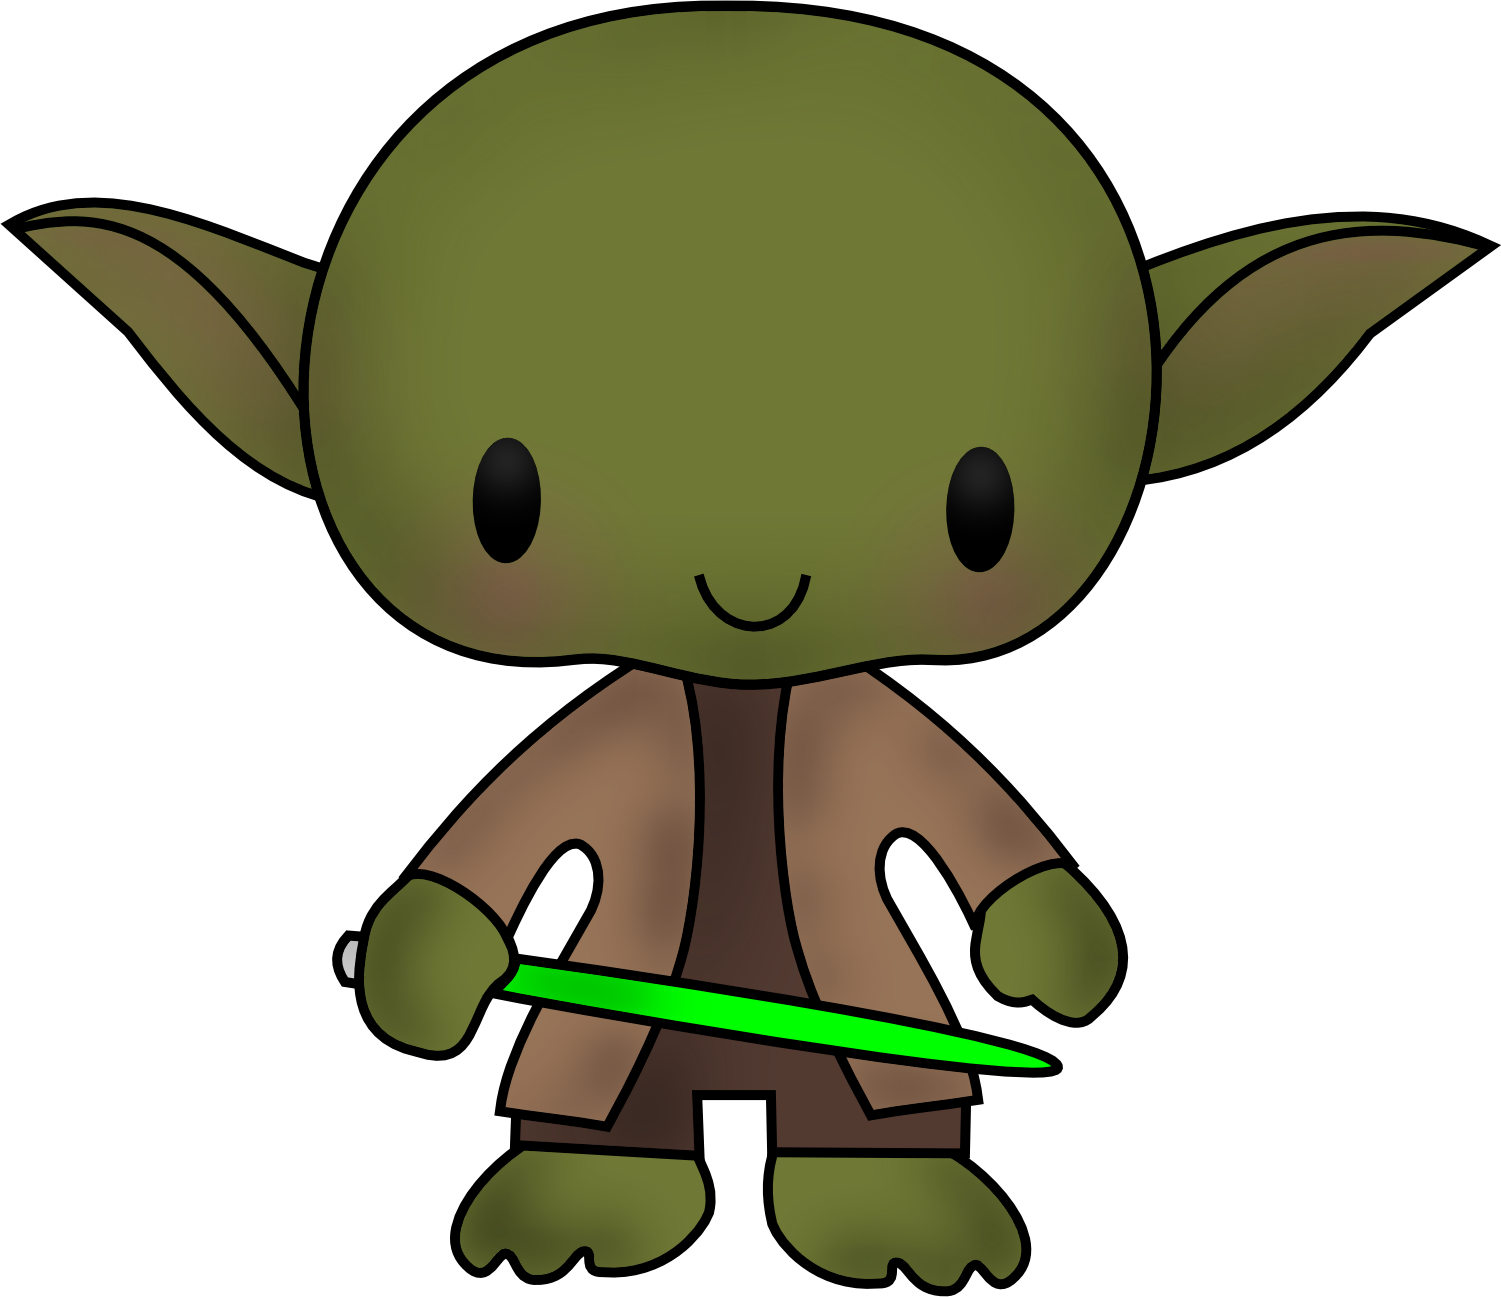 Star wars jedi clipart jpg library download Star Wars | Clip Art | Pinterest | Star jpg library download